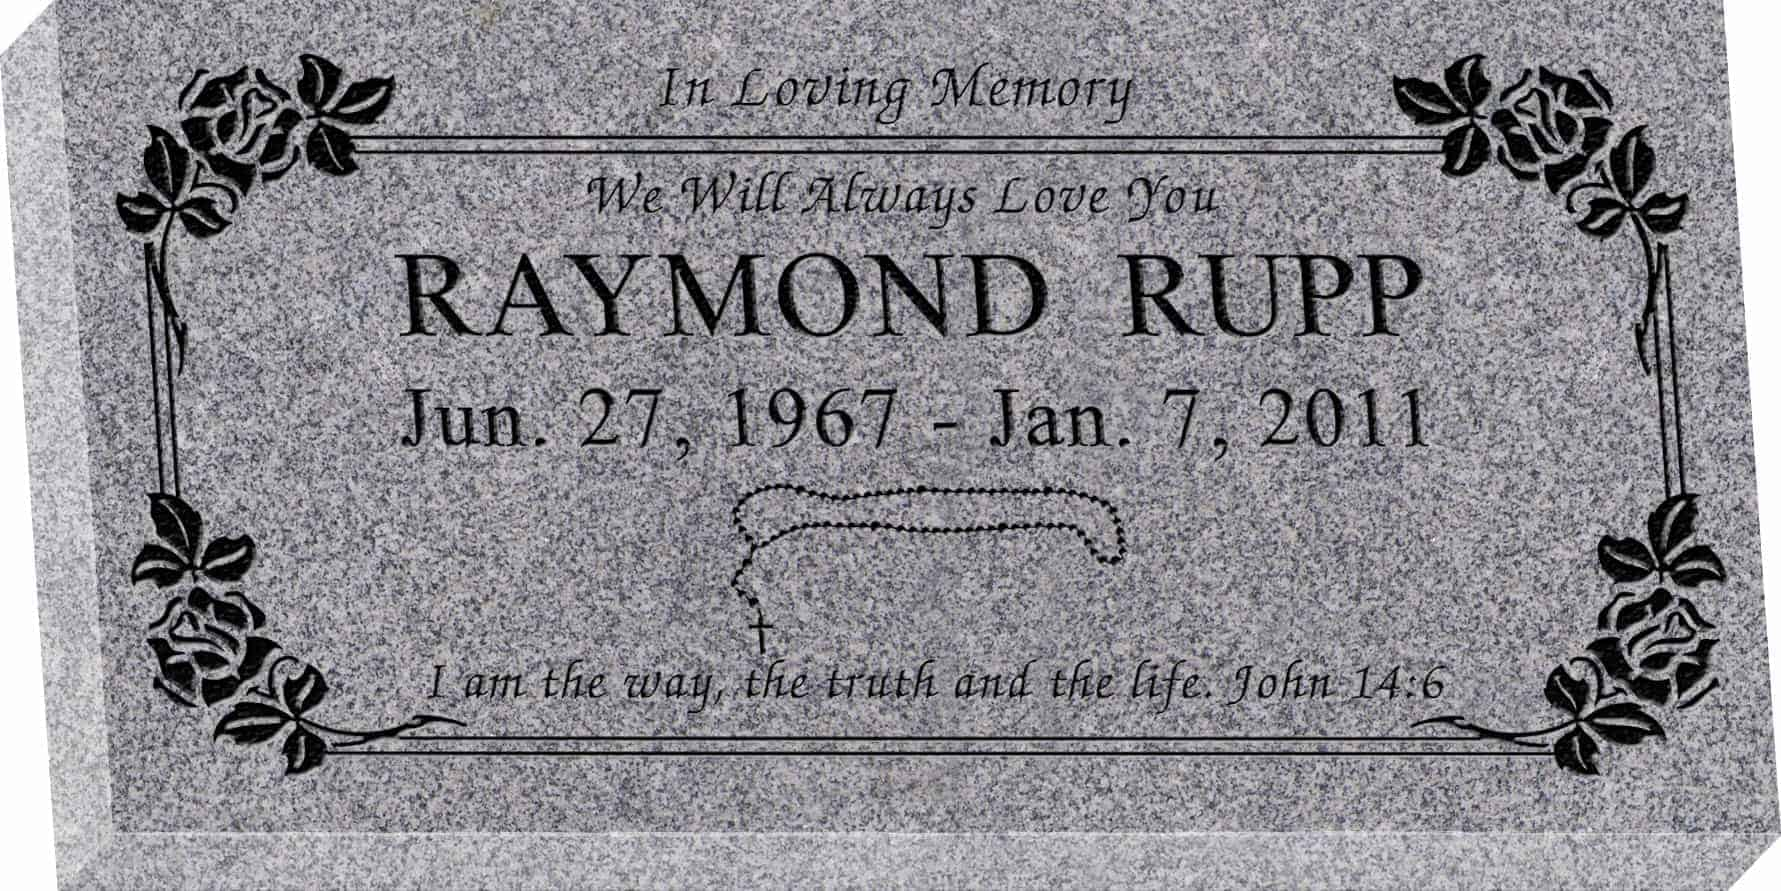 24inch_x_12inch_x_3inch_Flat_Granite_Headstone_in_Grey_with_design_SD-208